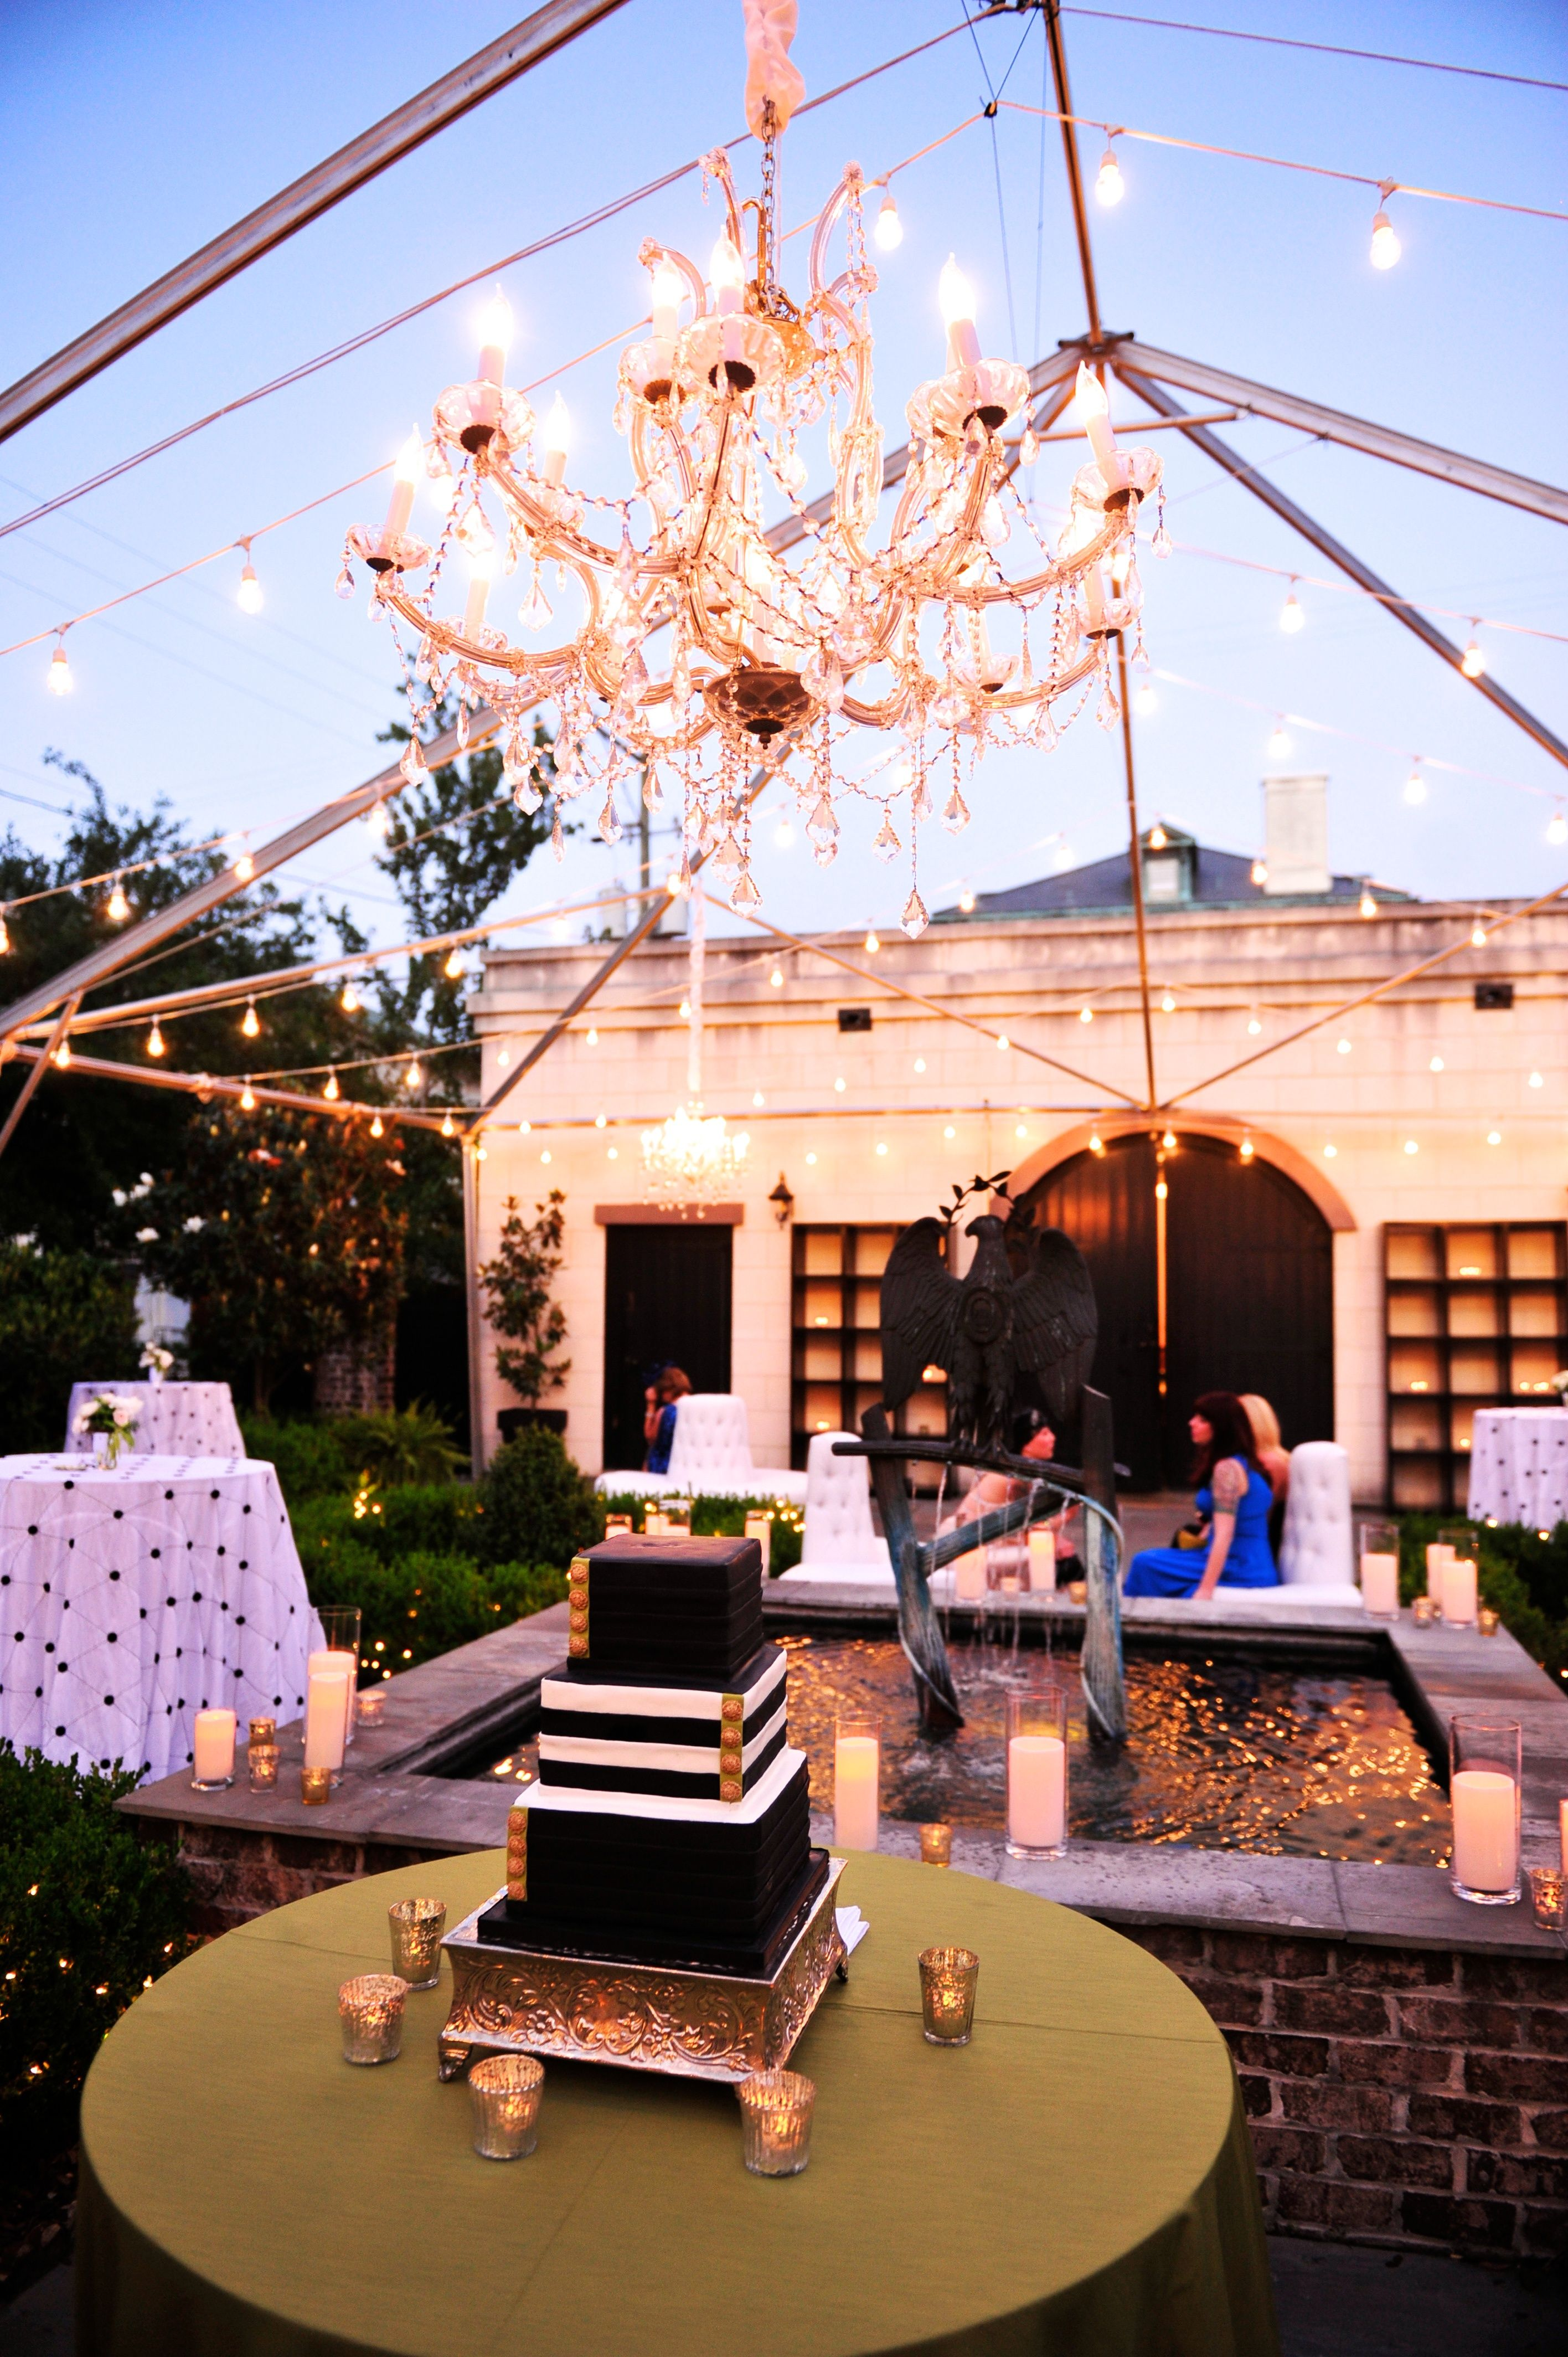 featured tent frame with chaneliers and bare bulb lighting